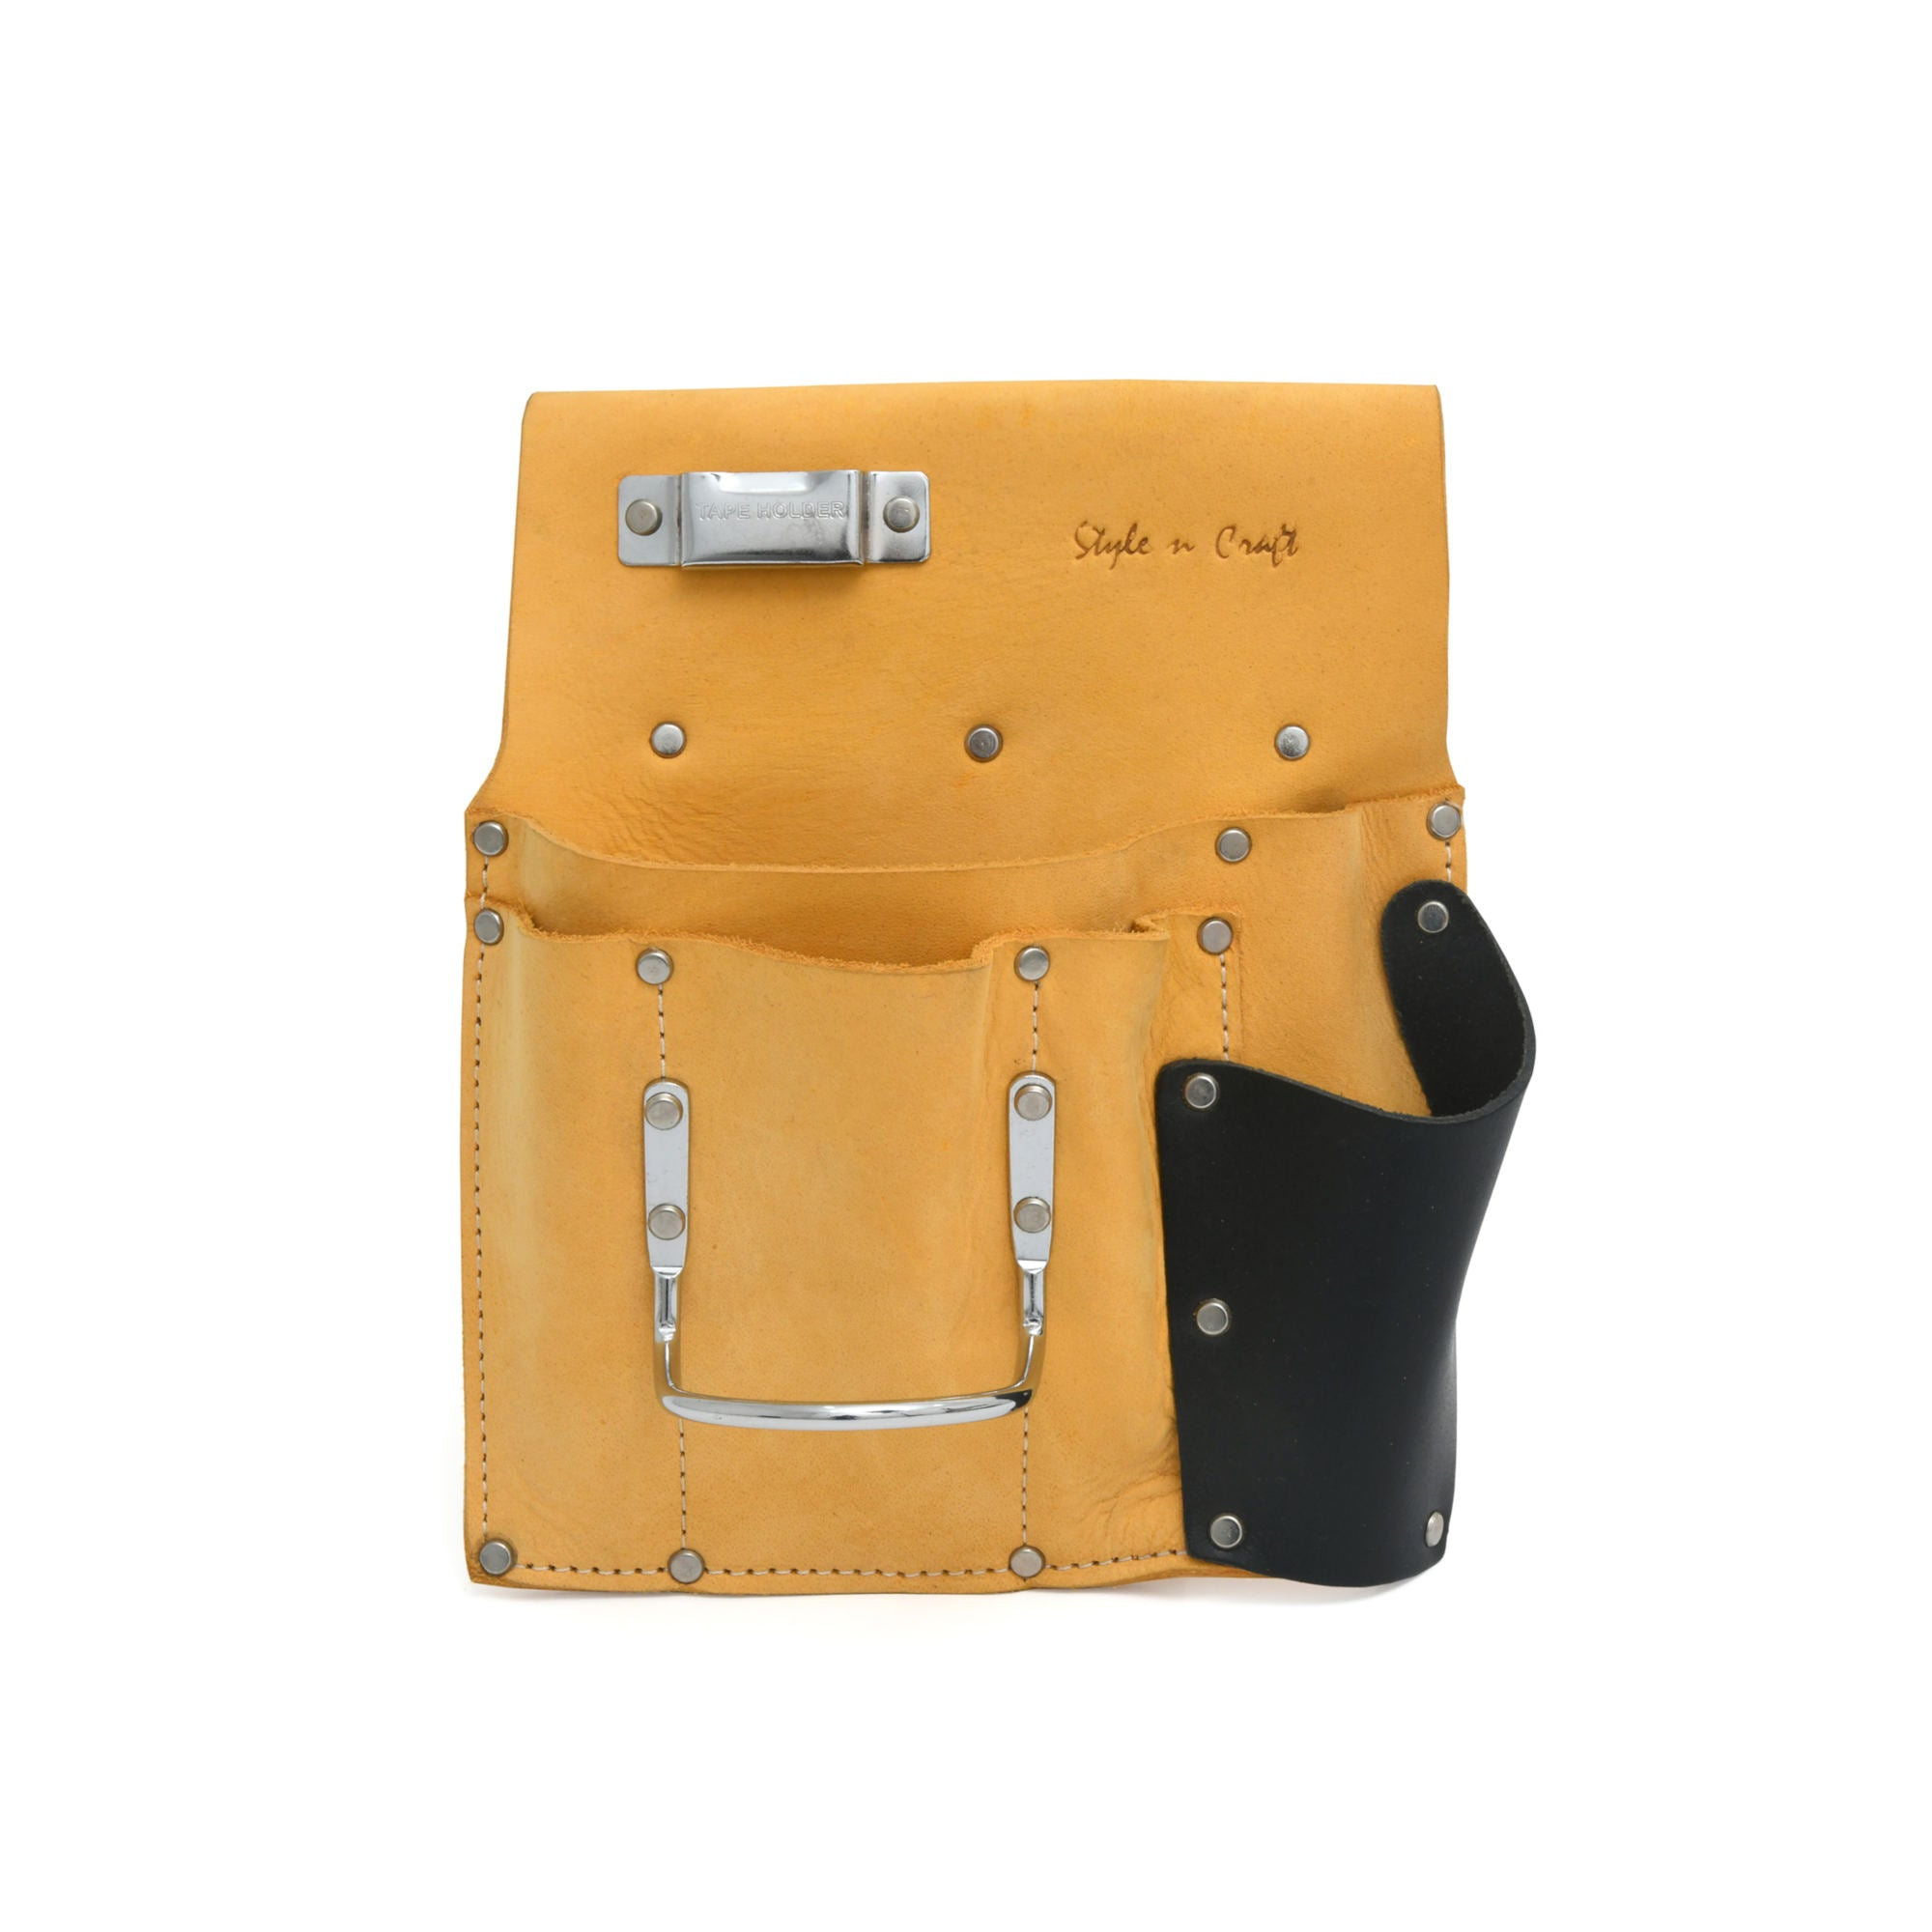 Style n Craft 93485L - 6 Pocket Drywall Hanger's Tool Pouch for Left Handed People in Yellow Color Top Grain Leather with Leather Saw Holder in Black Top Grain Leather. Metal Tape Clip & Metal Hammer Holder